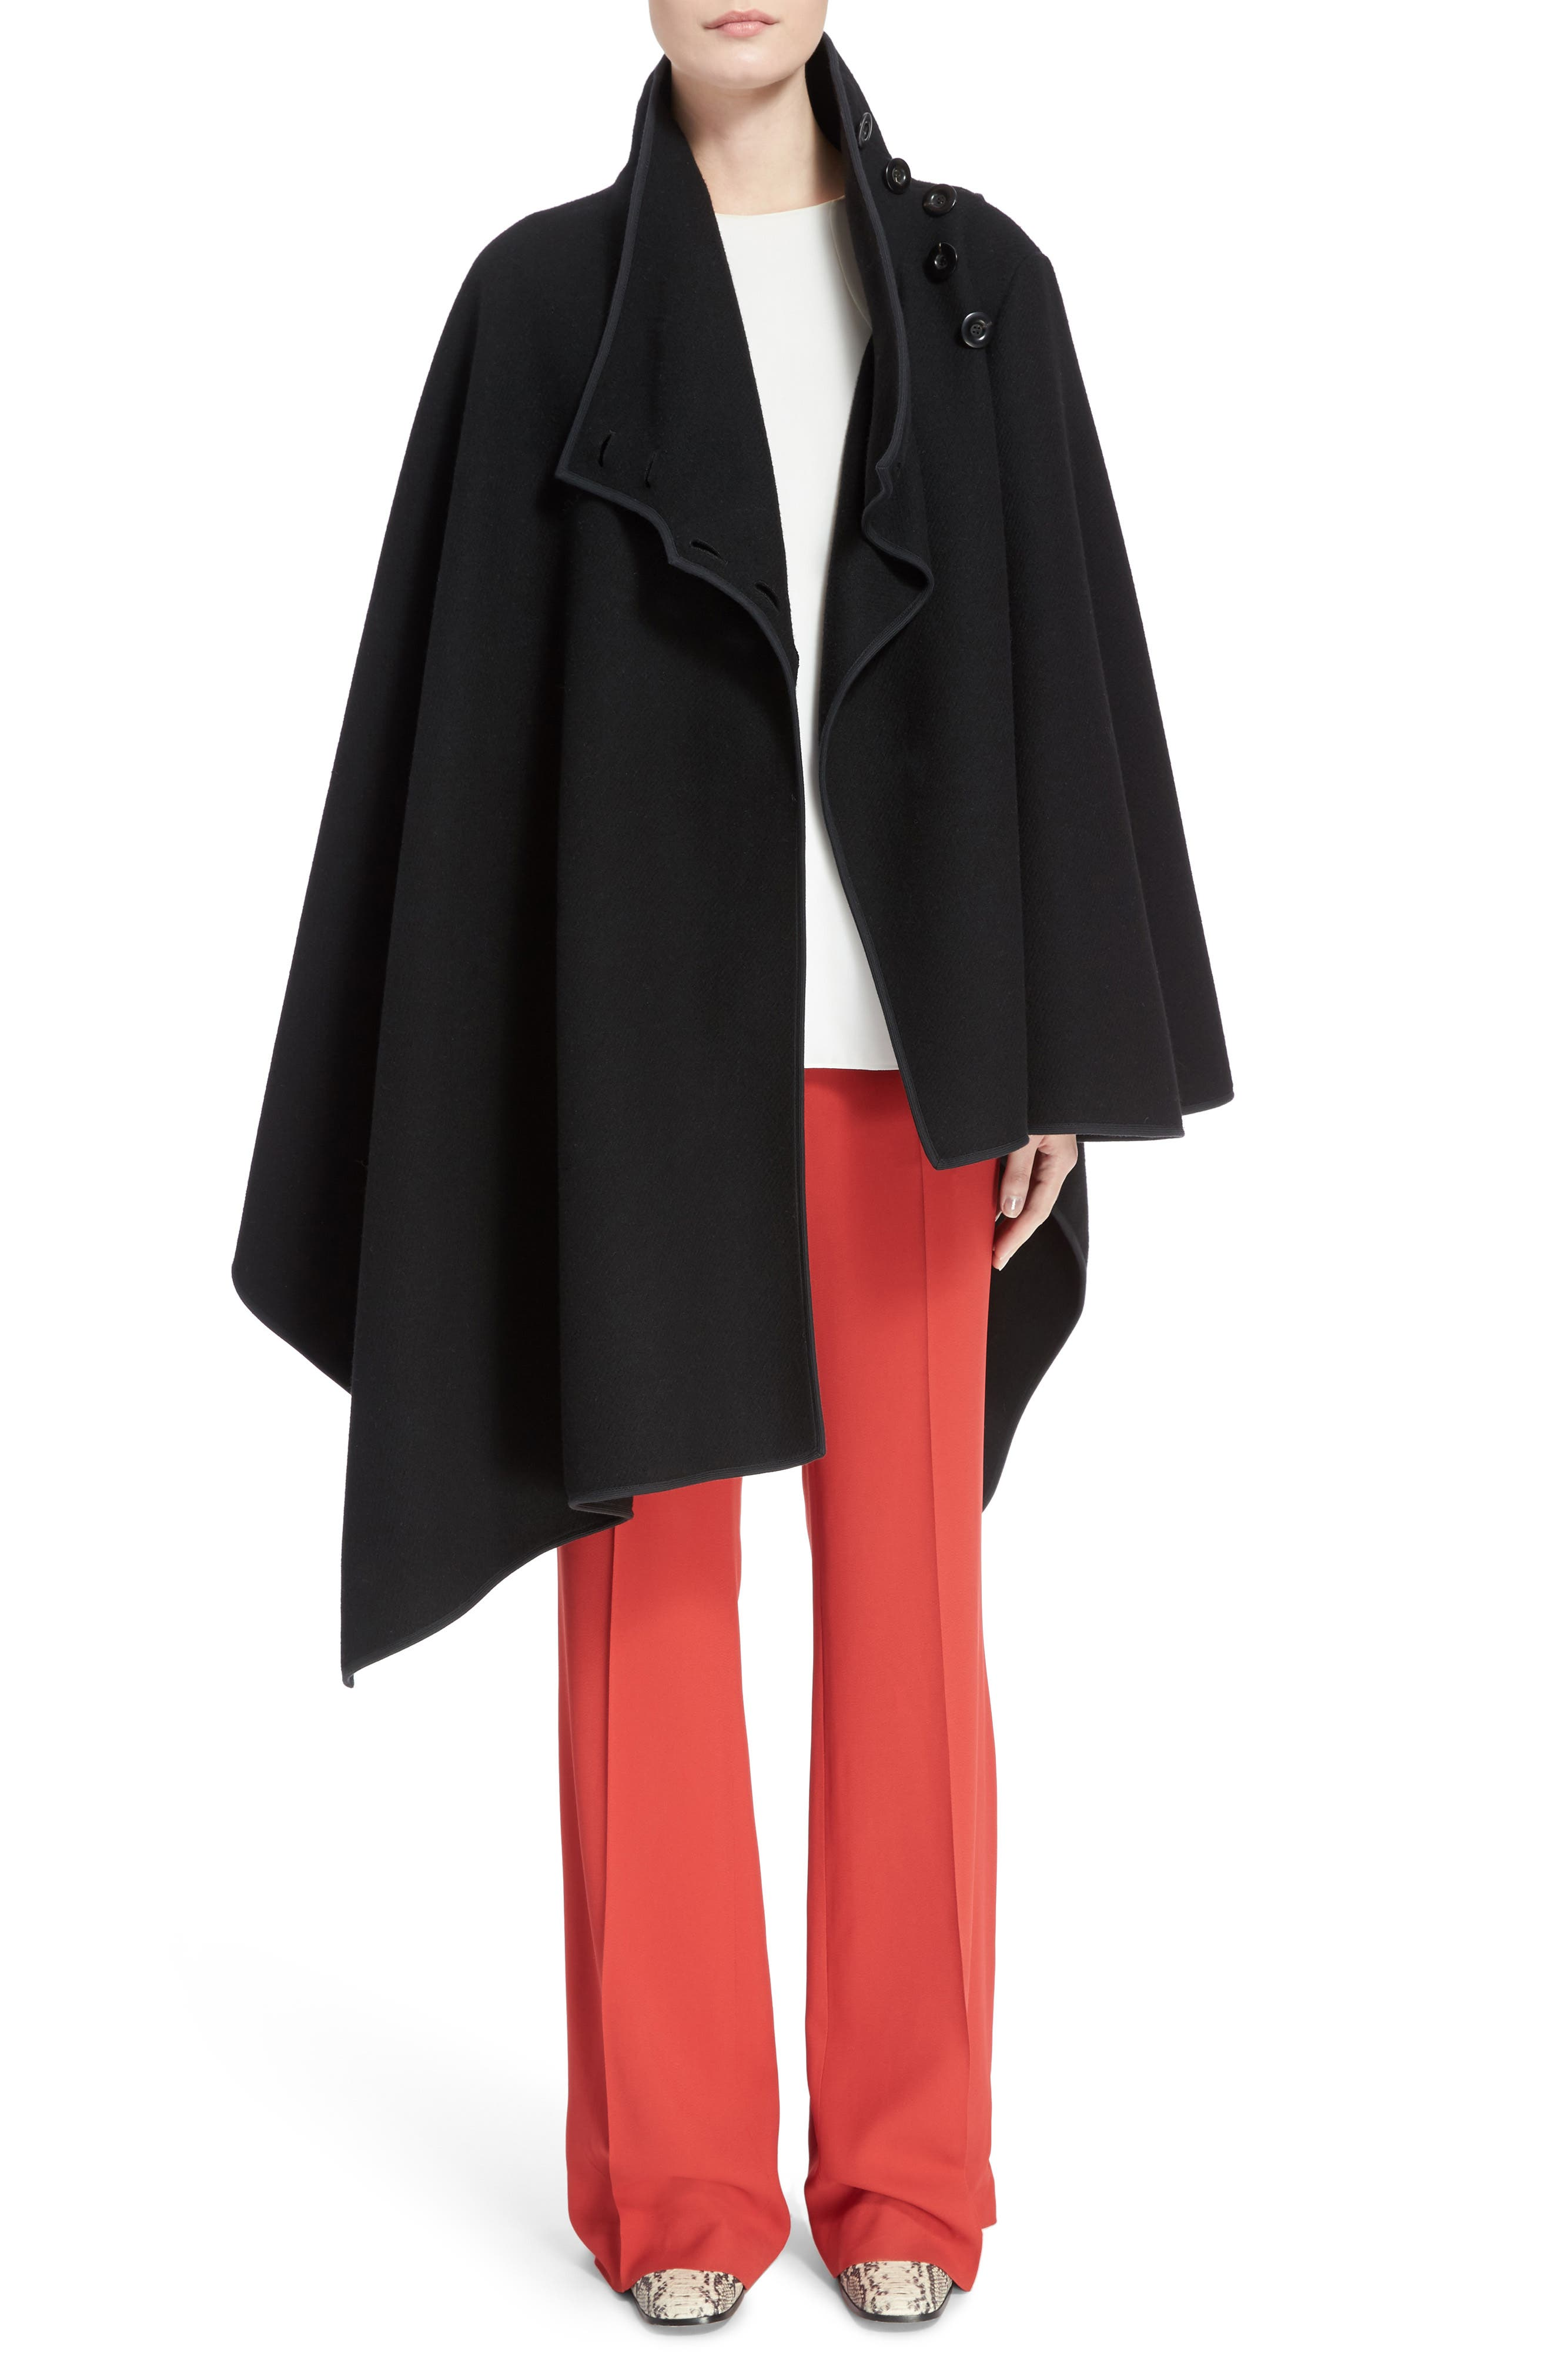 Cady Flare Suiting Pants,                             Alternate thumbnail 8, color,                             Ginger Red